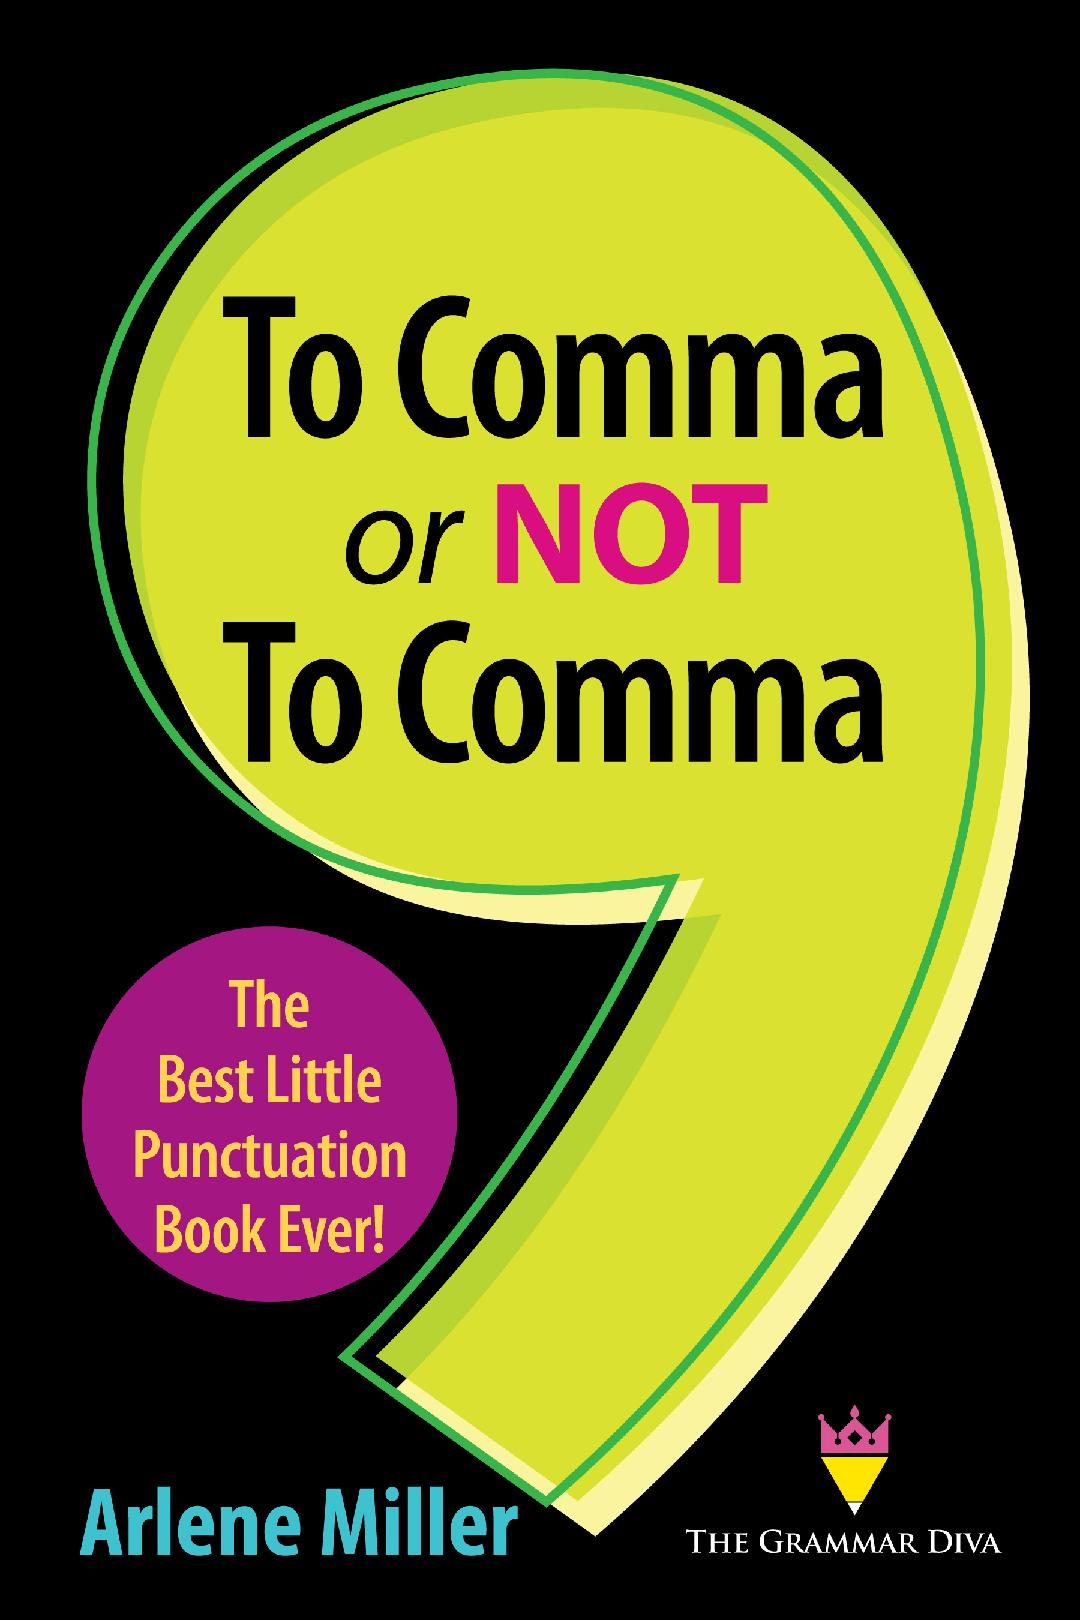 To Comma or Not to Comma